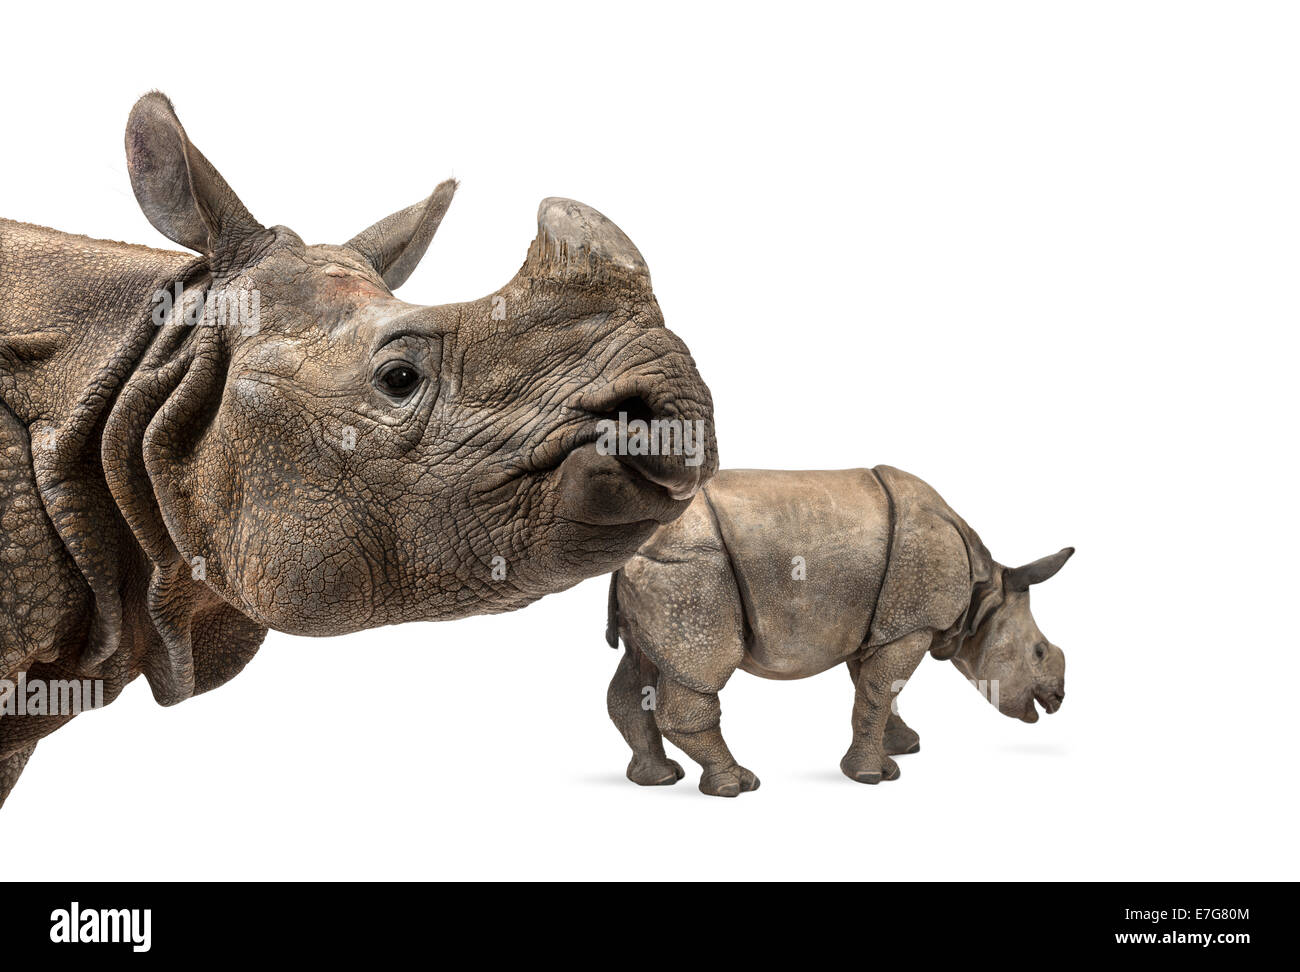 Indian rhinoceros mother and her baby in front of white background - Stock Image